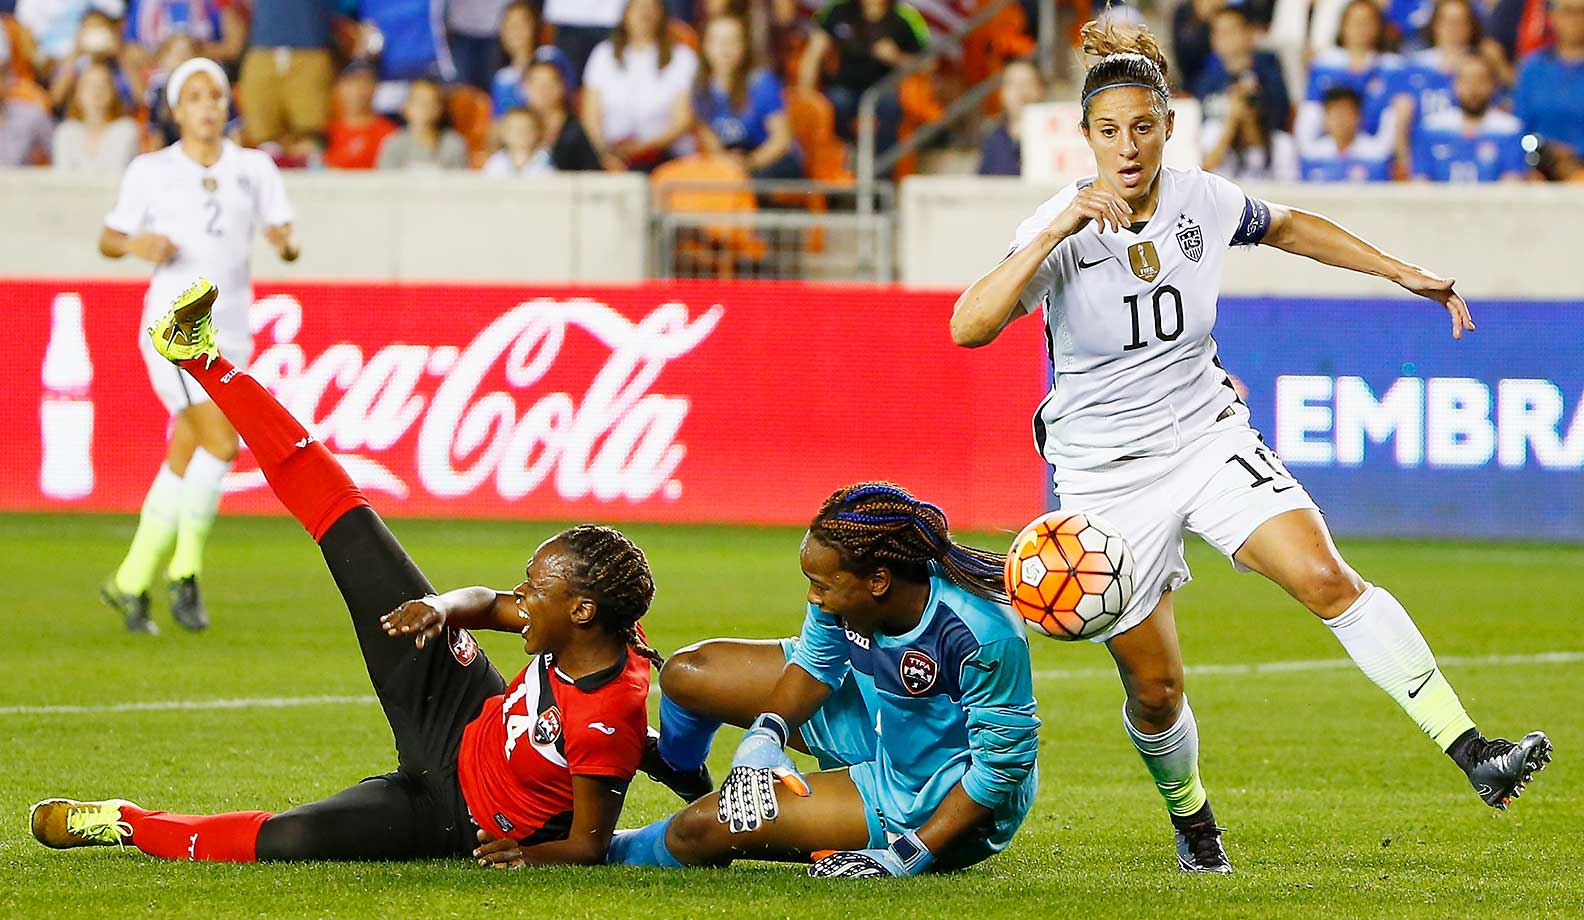 Carli Lloyd of the United States battles for the ball with keeper Kimika Forbes of Trinidad and Tobago.